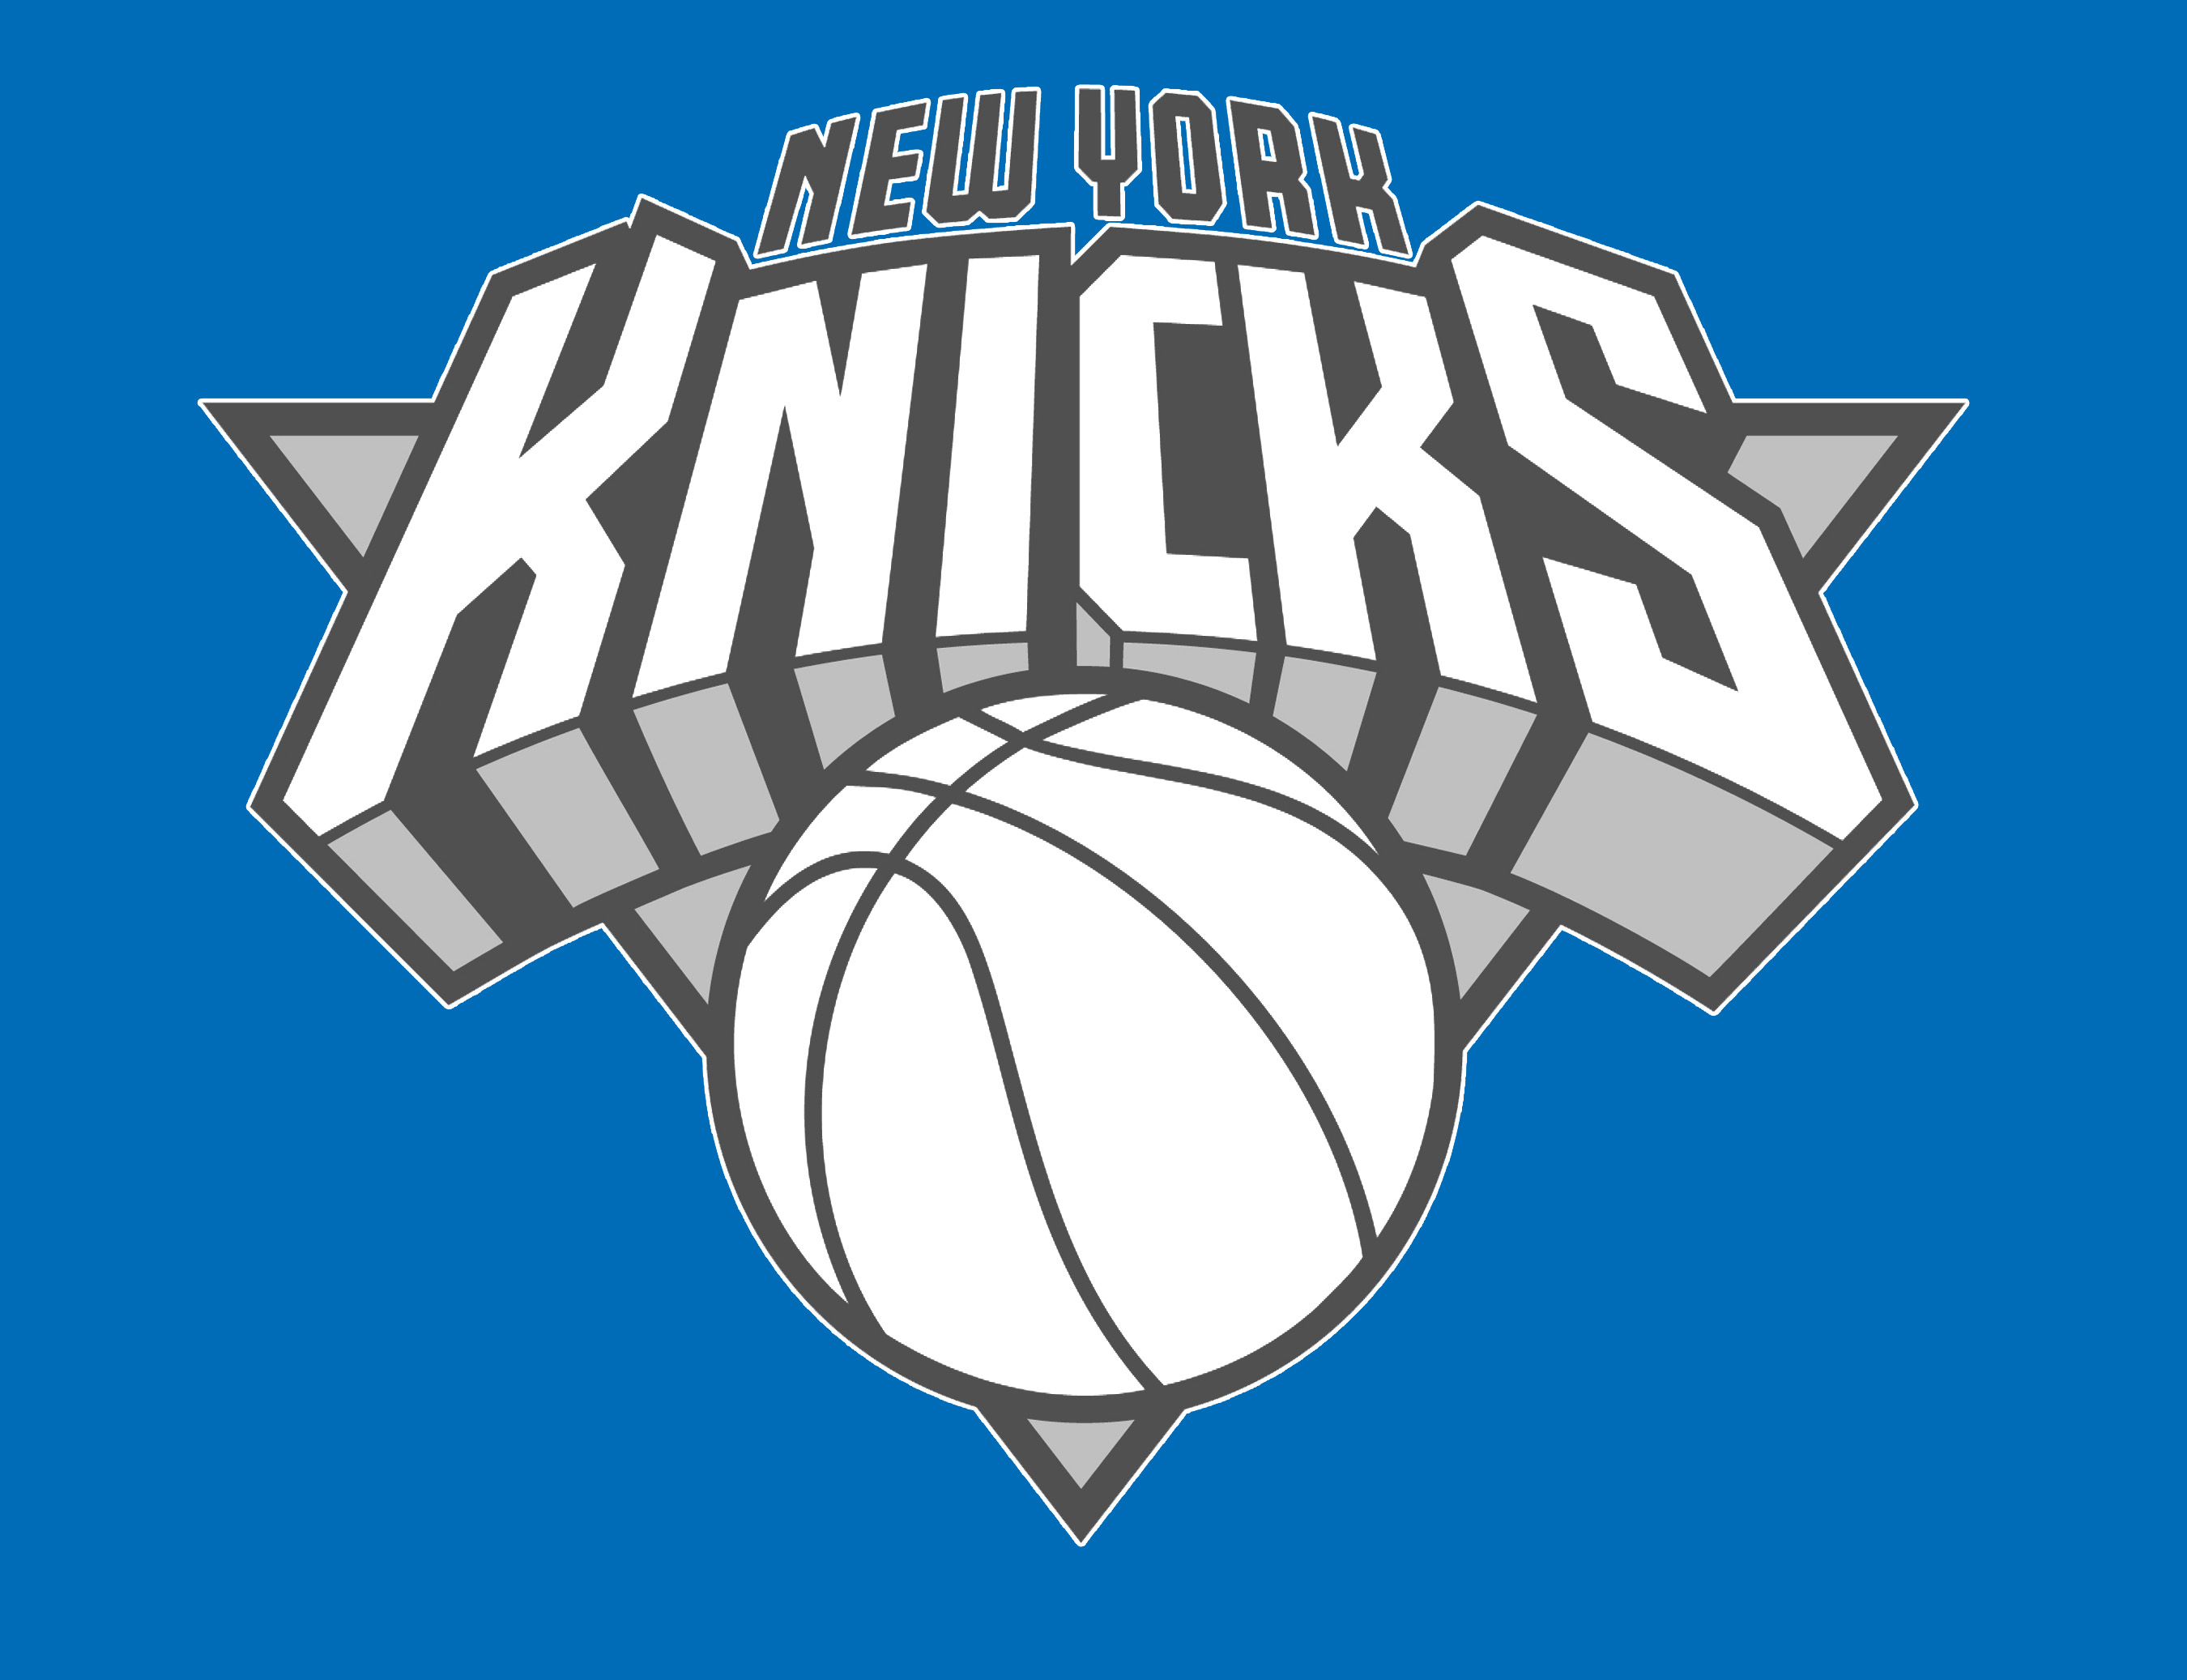 Meaning New York Knicks Logo And Symbol History And Evolution